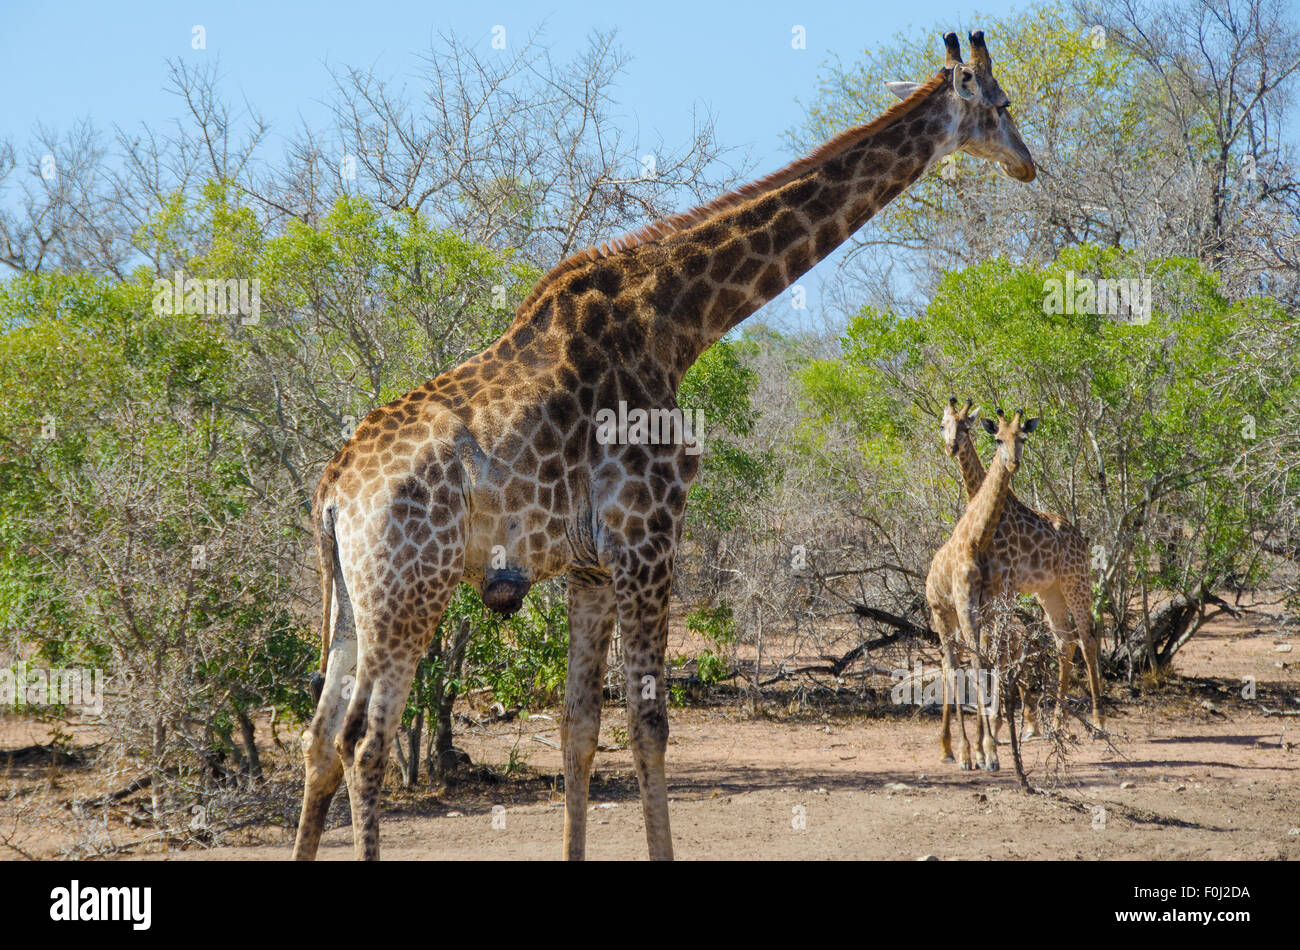 An adult South African giraffe feasts on vegetation as its babies play with one another in Swaziland. - Stock Image